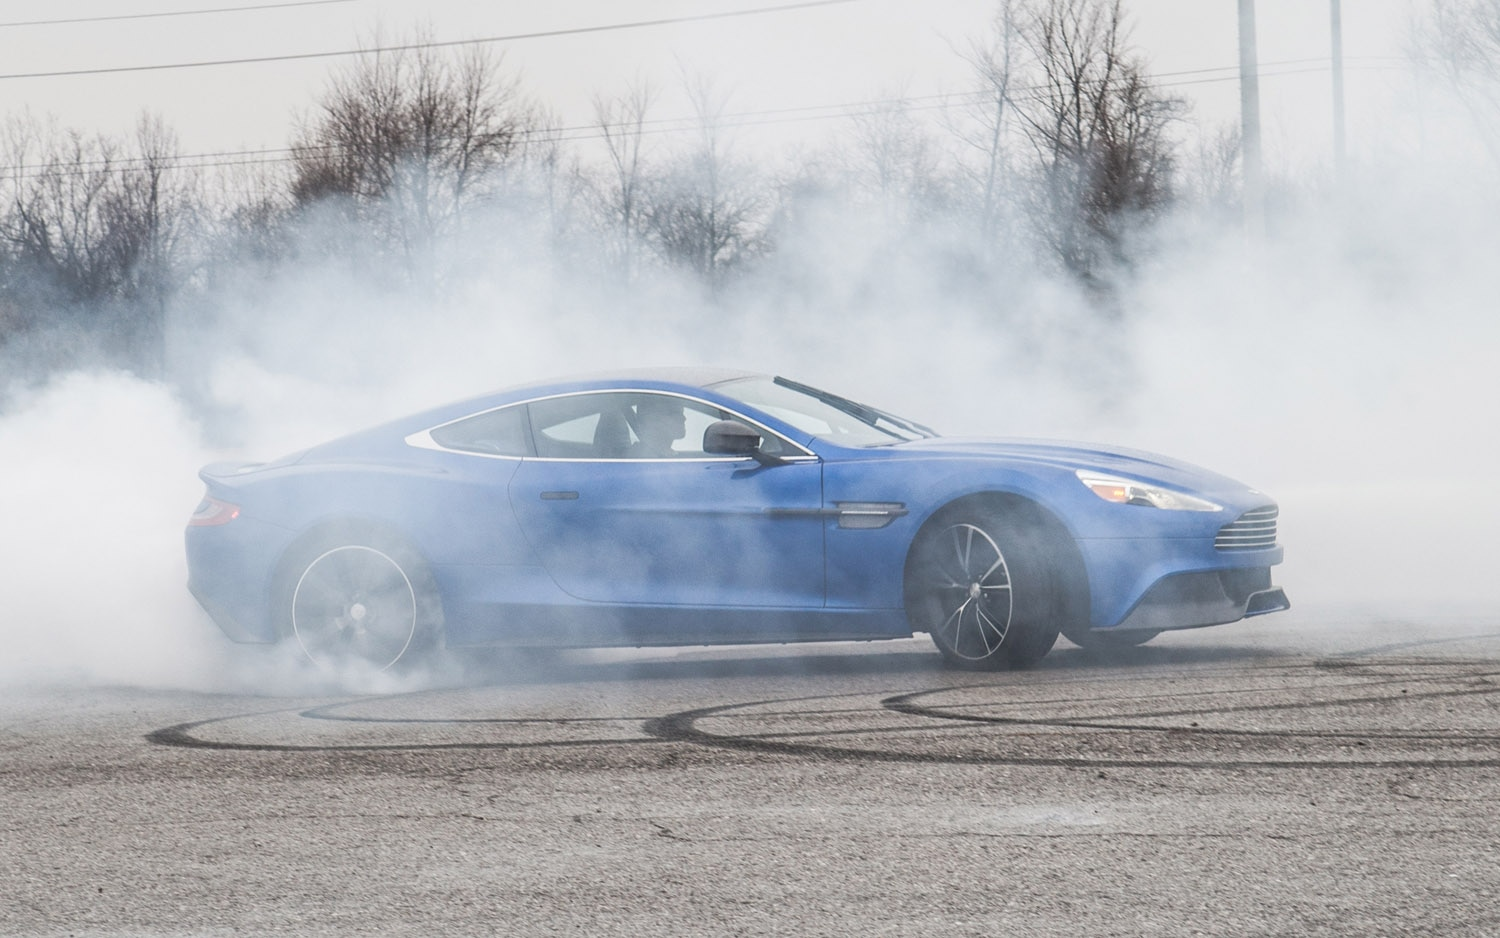 2013 Aston Martin Vanquish Right Side View Burnout1